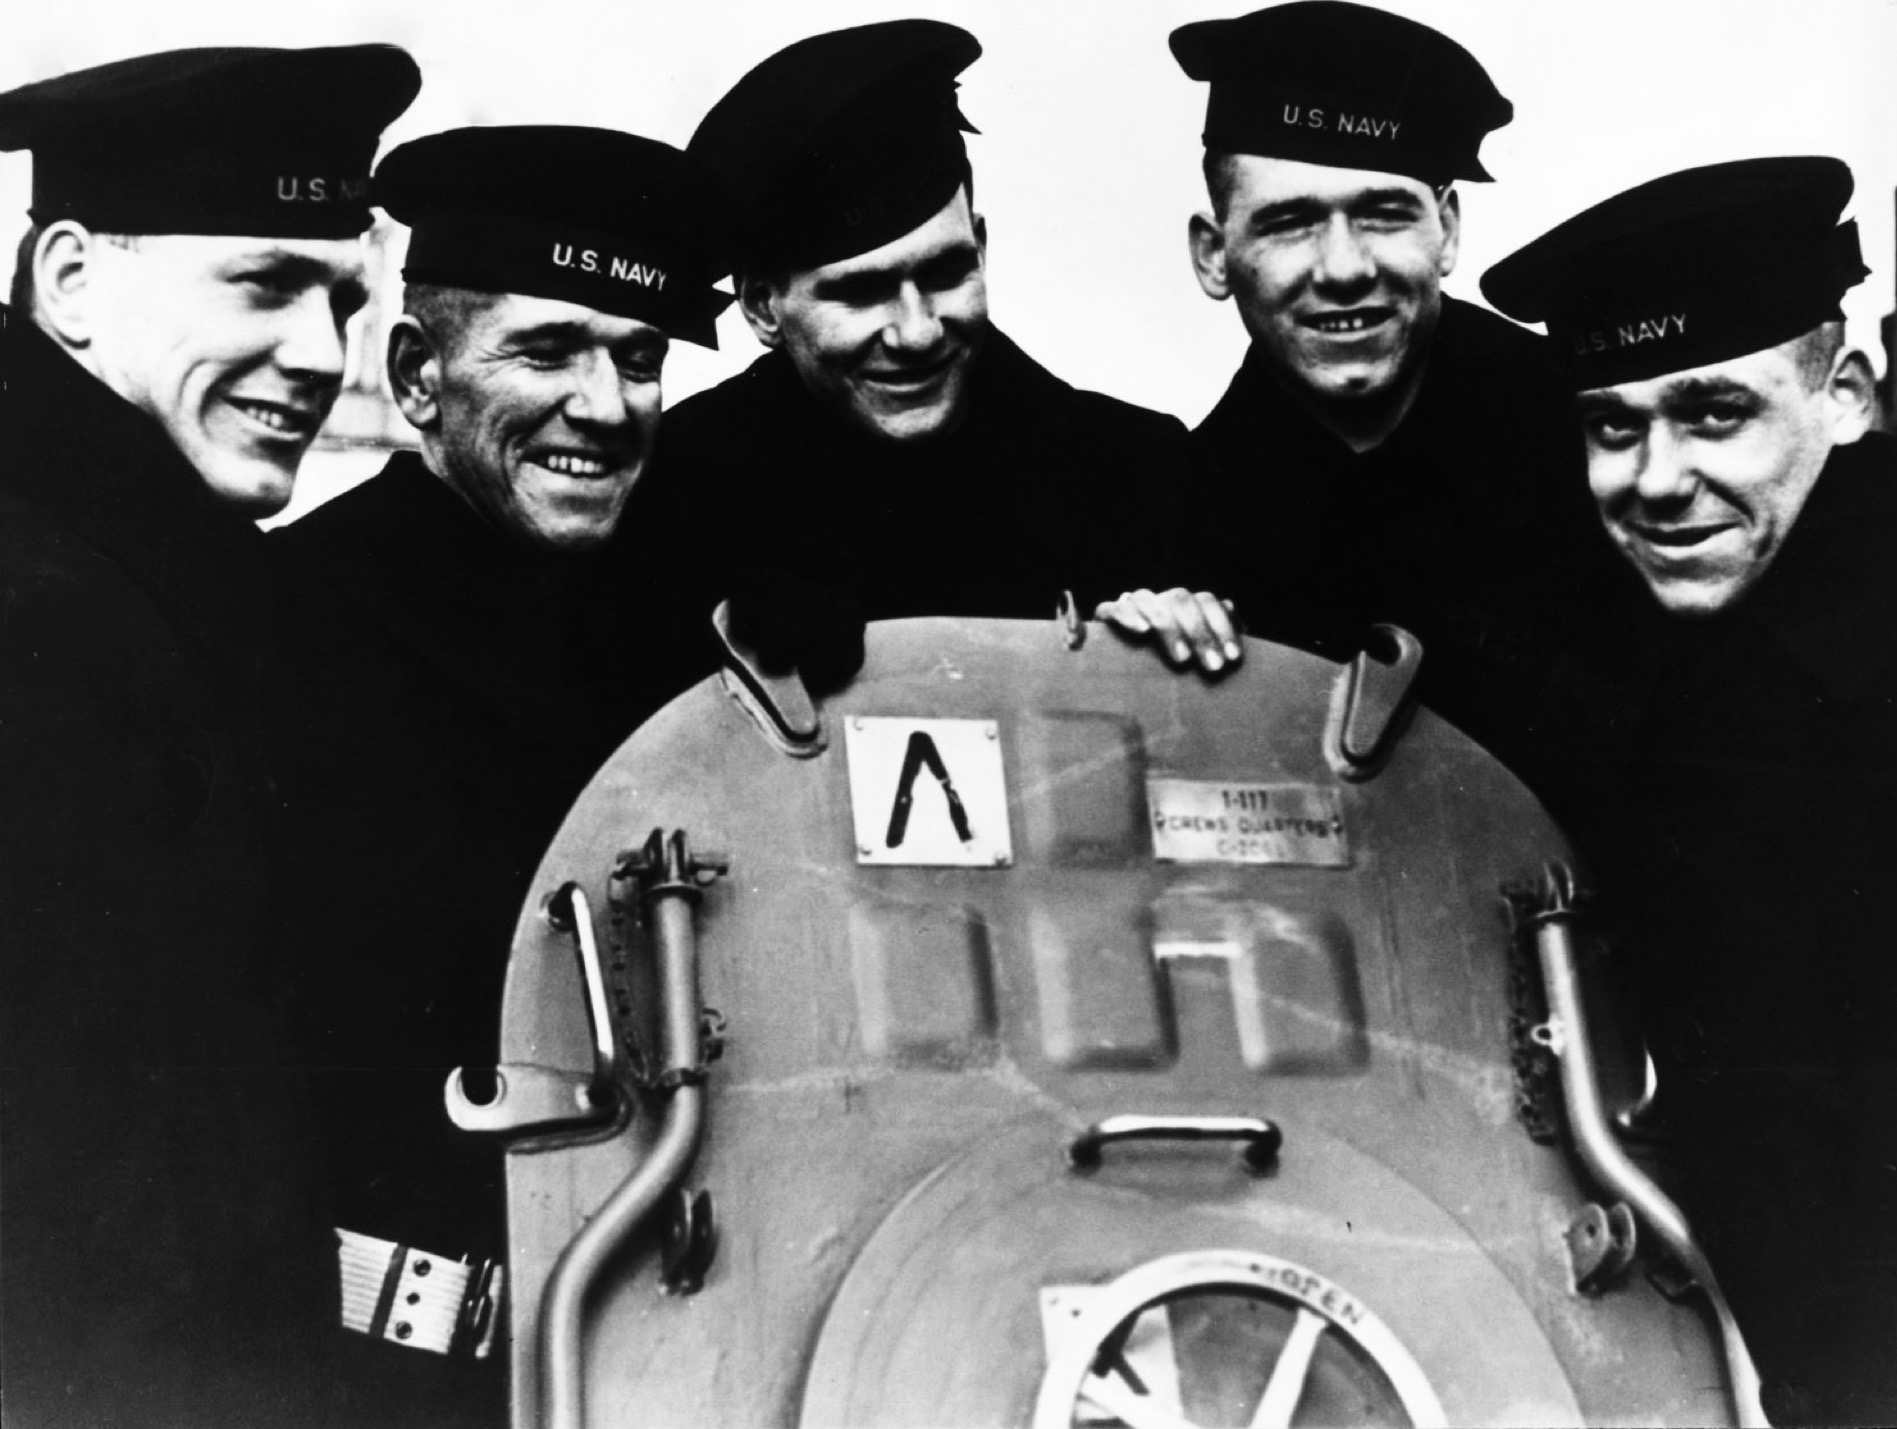 1942 – Five Sullivan brothers from Iowa die when their ship the ...